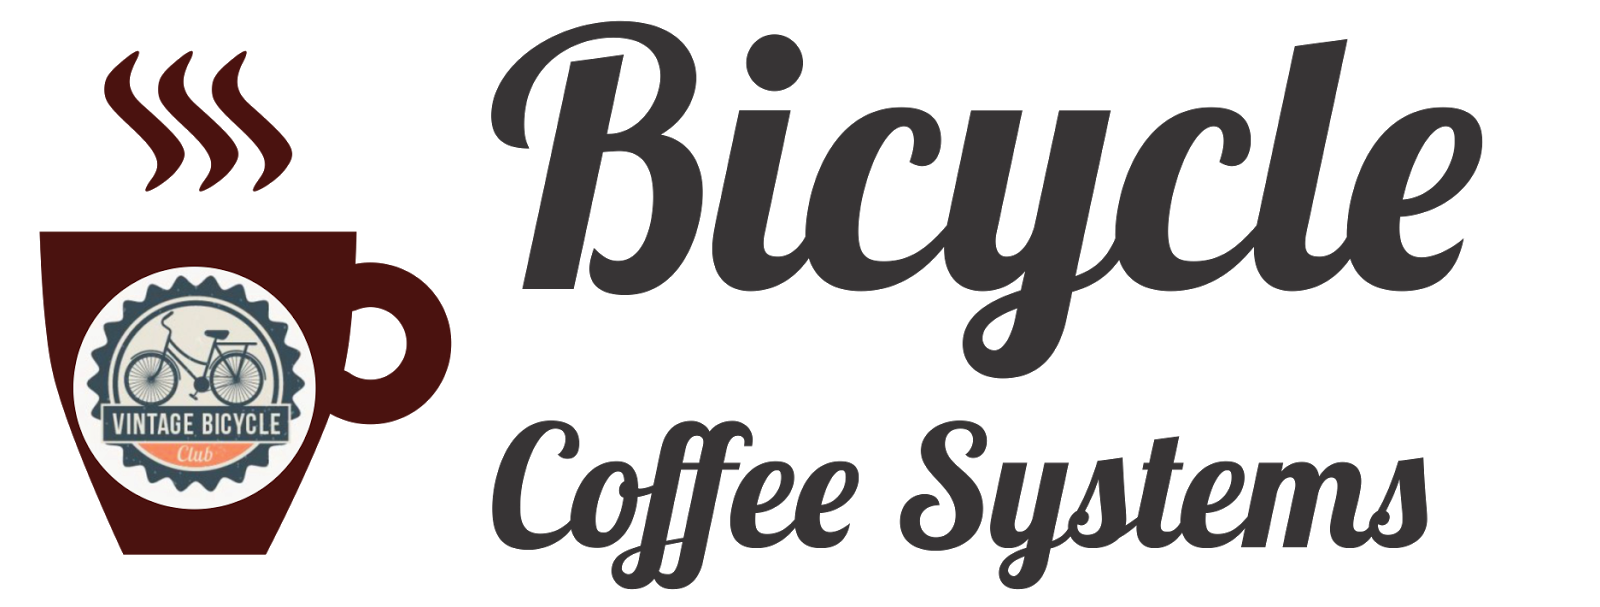 Bicycle Coffee Systems | Classic Retro Vintage MTB, Roadbike, Citybike, Touringbike, Mixtebike